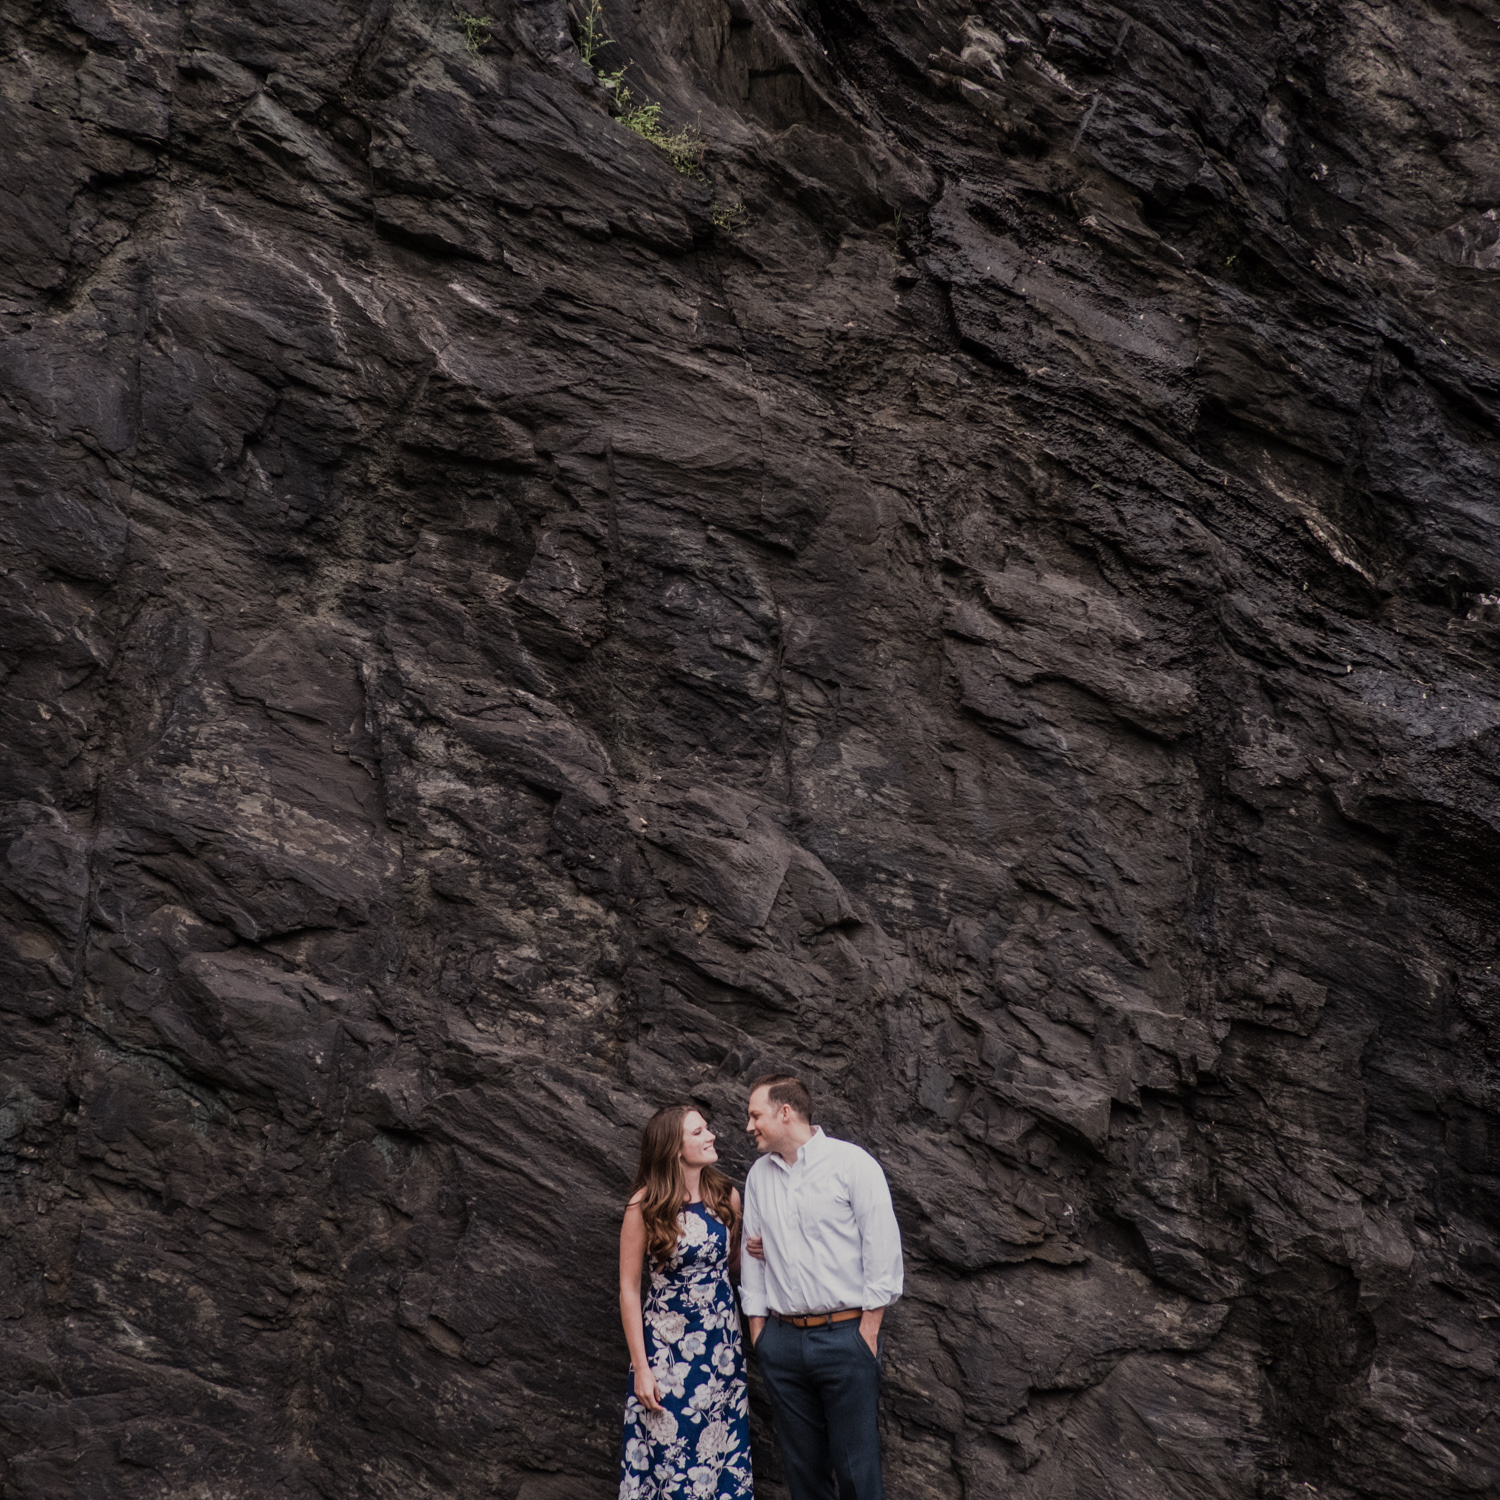 Point of Rocks engagement session along the cliffs